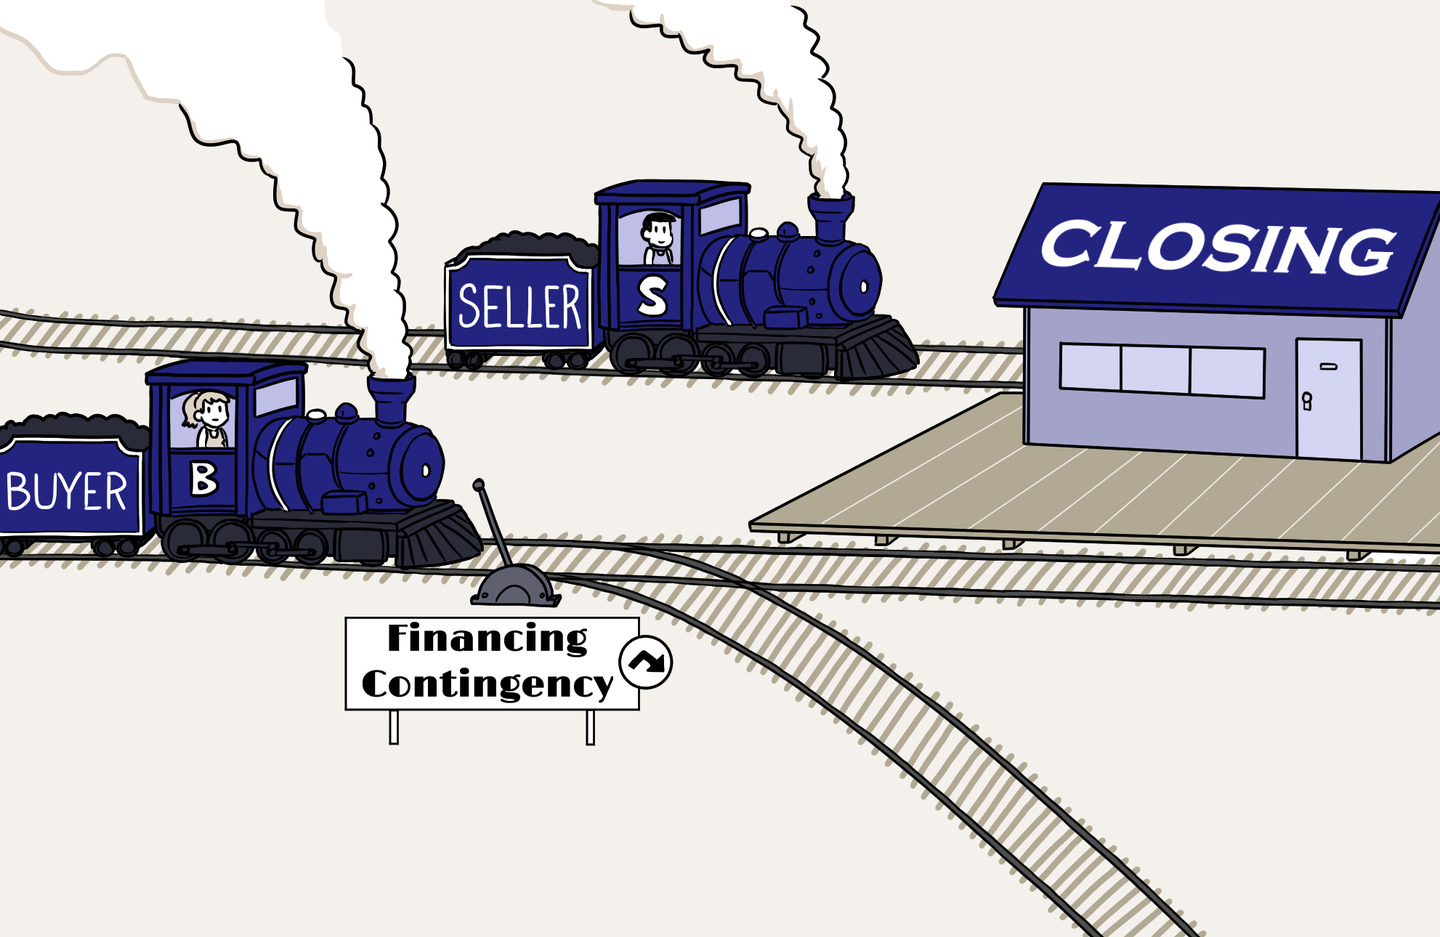 Buyer and seller on trains heading to the closing but the buyer has a switch labeled Financing Contingency to change tracks and avoid the closing